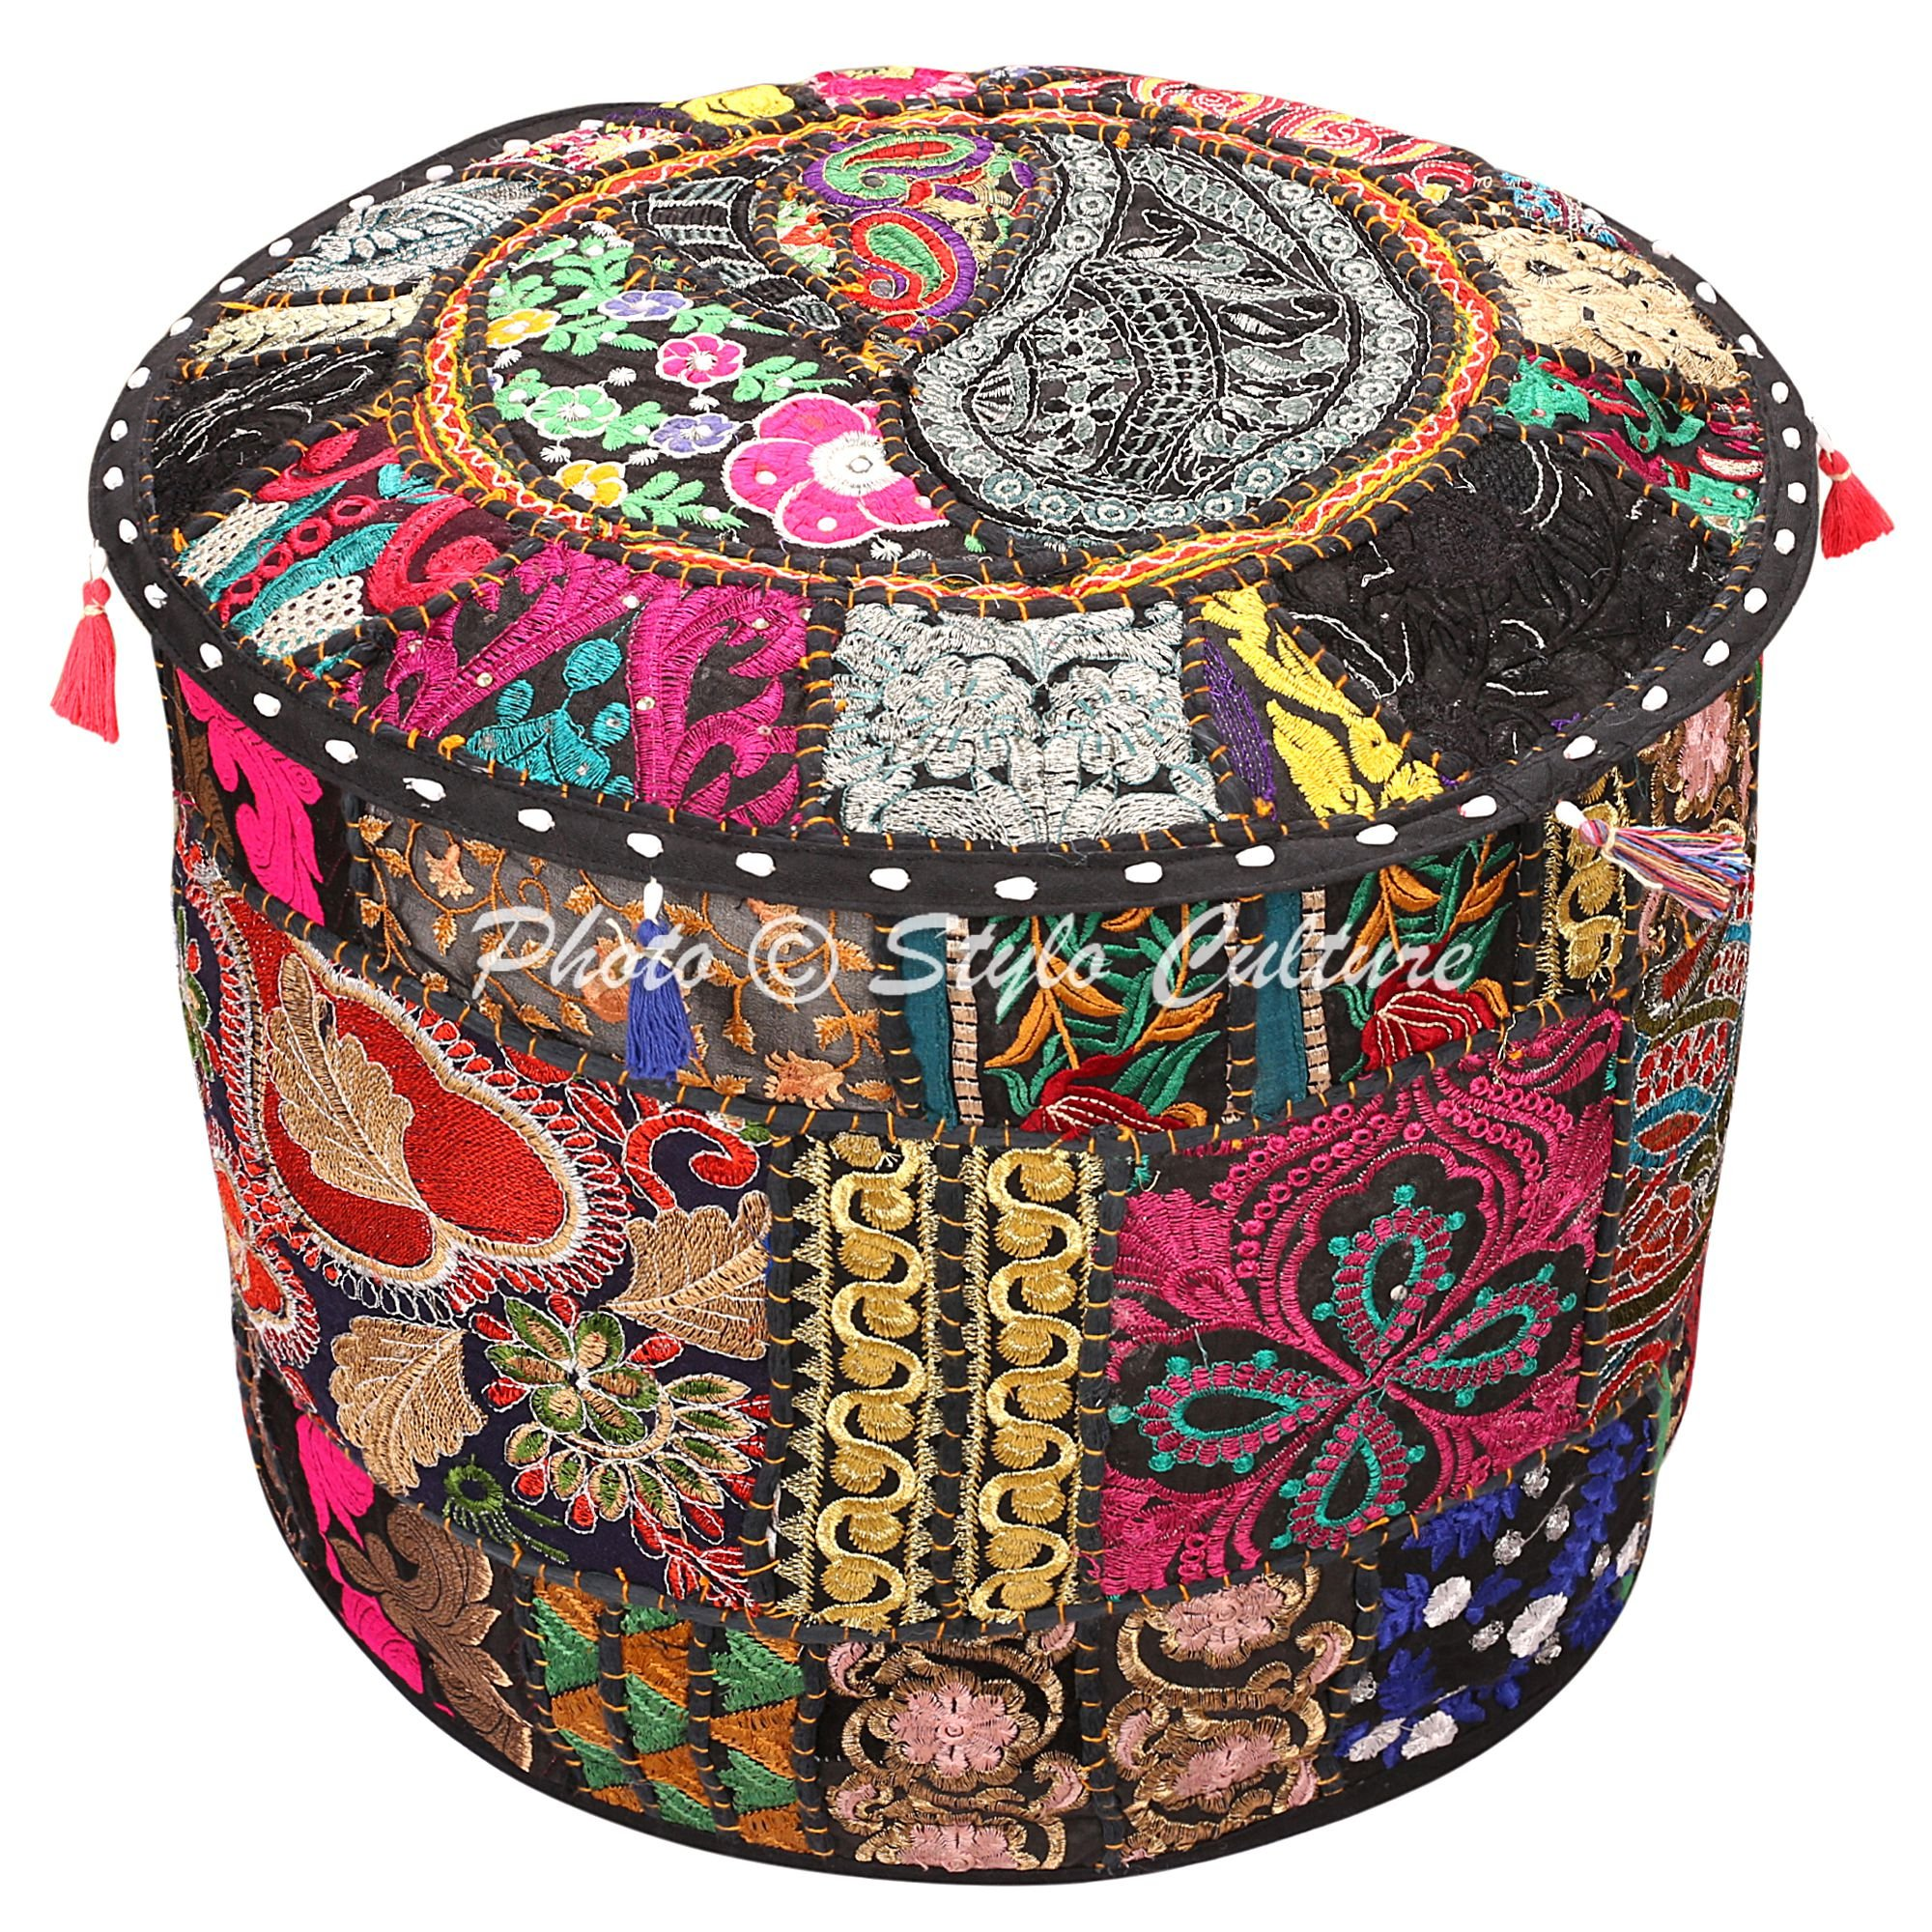 Stylo Culture Decorative Ottoman Pouf Cover Living Room Round Patchwork Embroidered Pouffe Ottoman Cover Black Cotton Floral Traditional Furniture Footstool Seat Puff Cover (16x16x13)